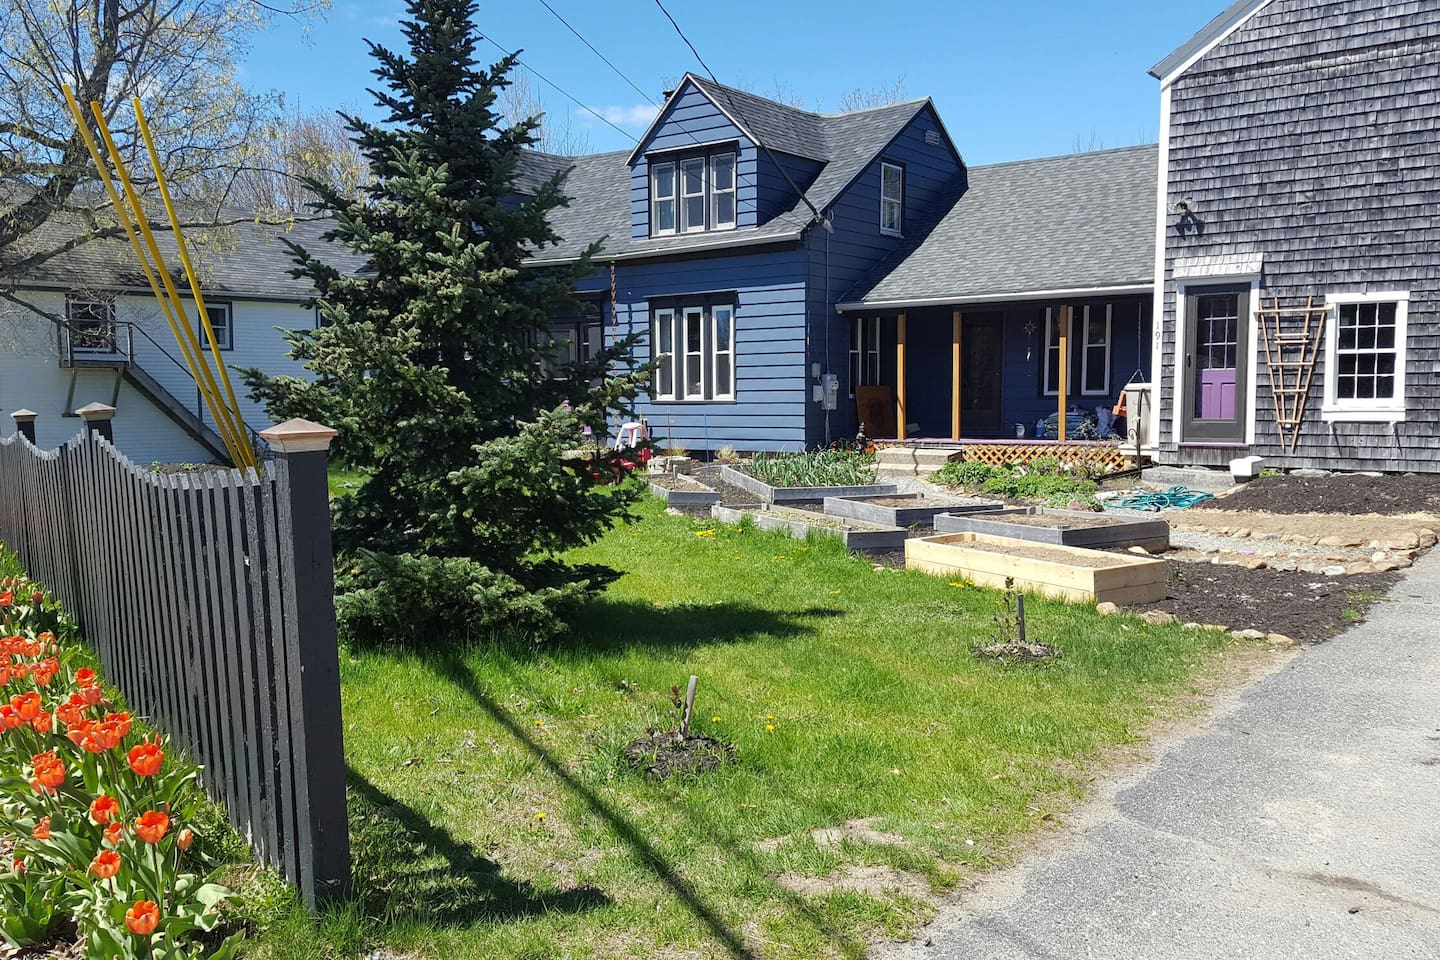 1825 farmhouse room on 11 acres houses for rent in union maine